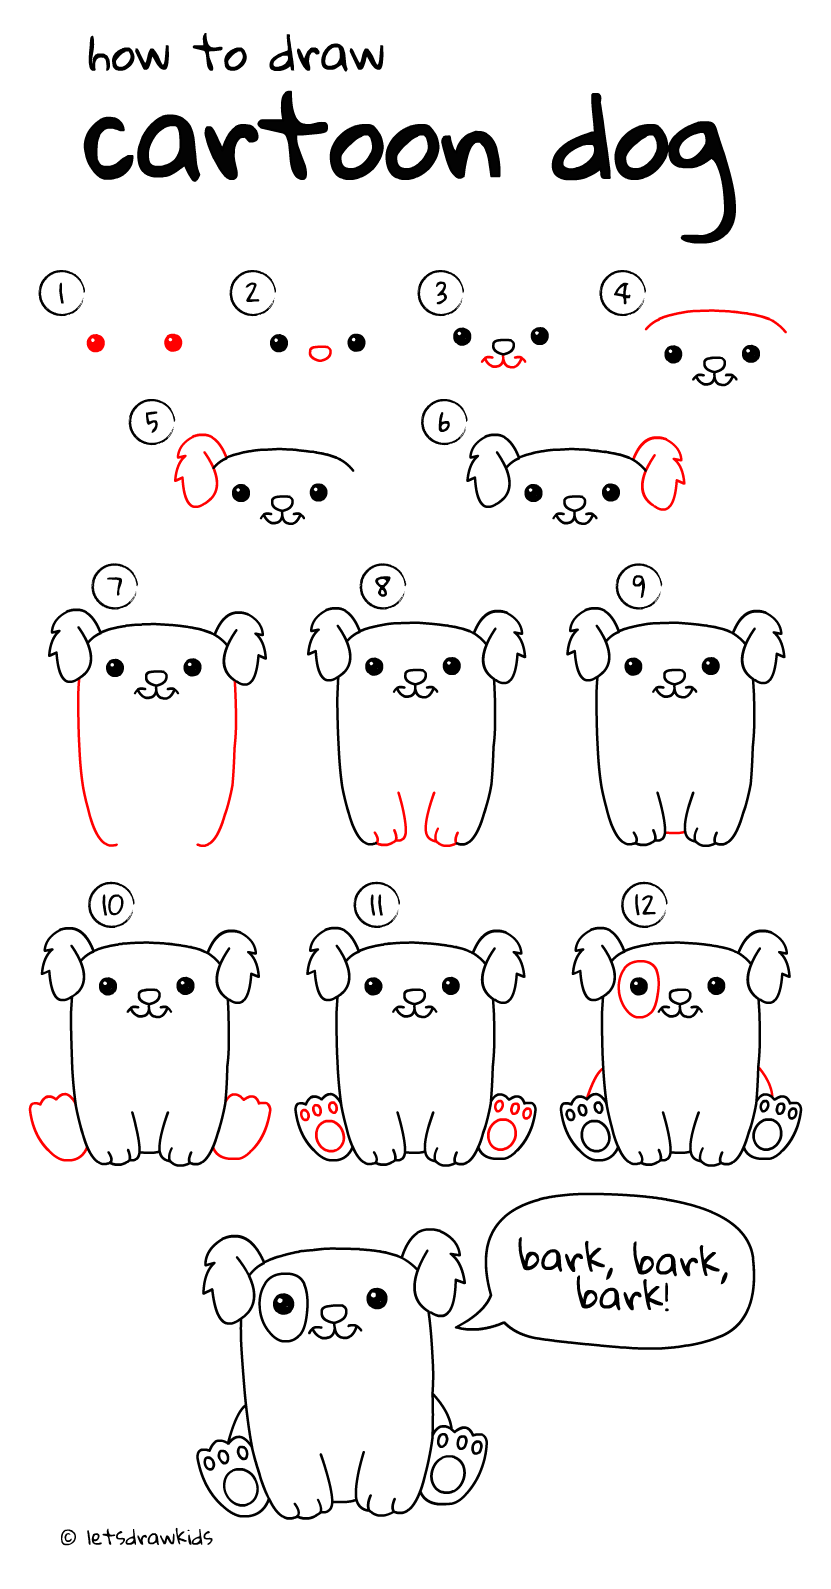 Uncategorized How To Draw A Dog For Kids Easy how to draw cartoon dog easy drawing step by perfect for kids